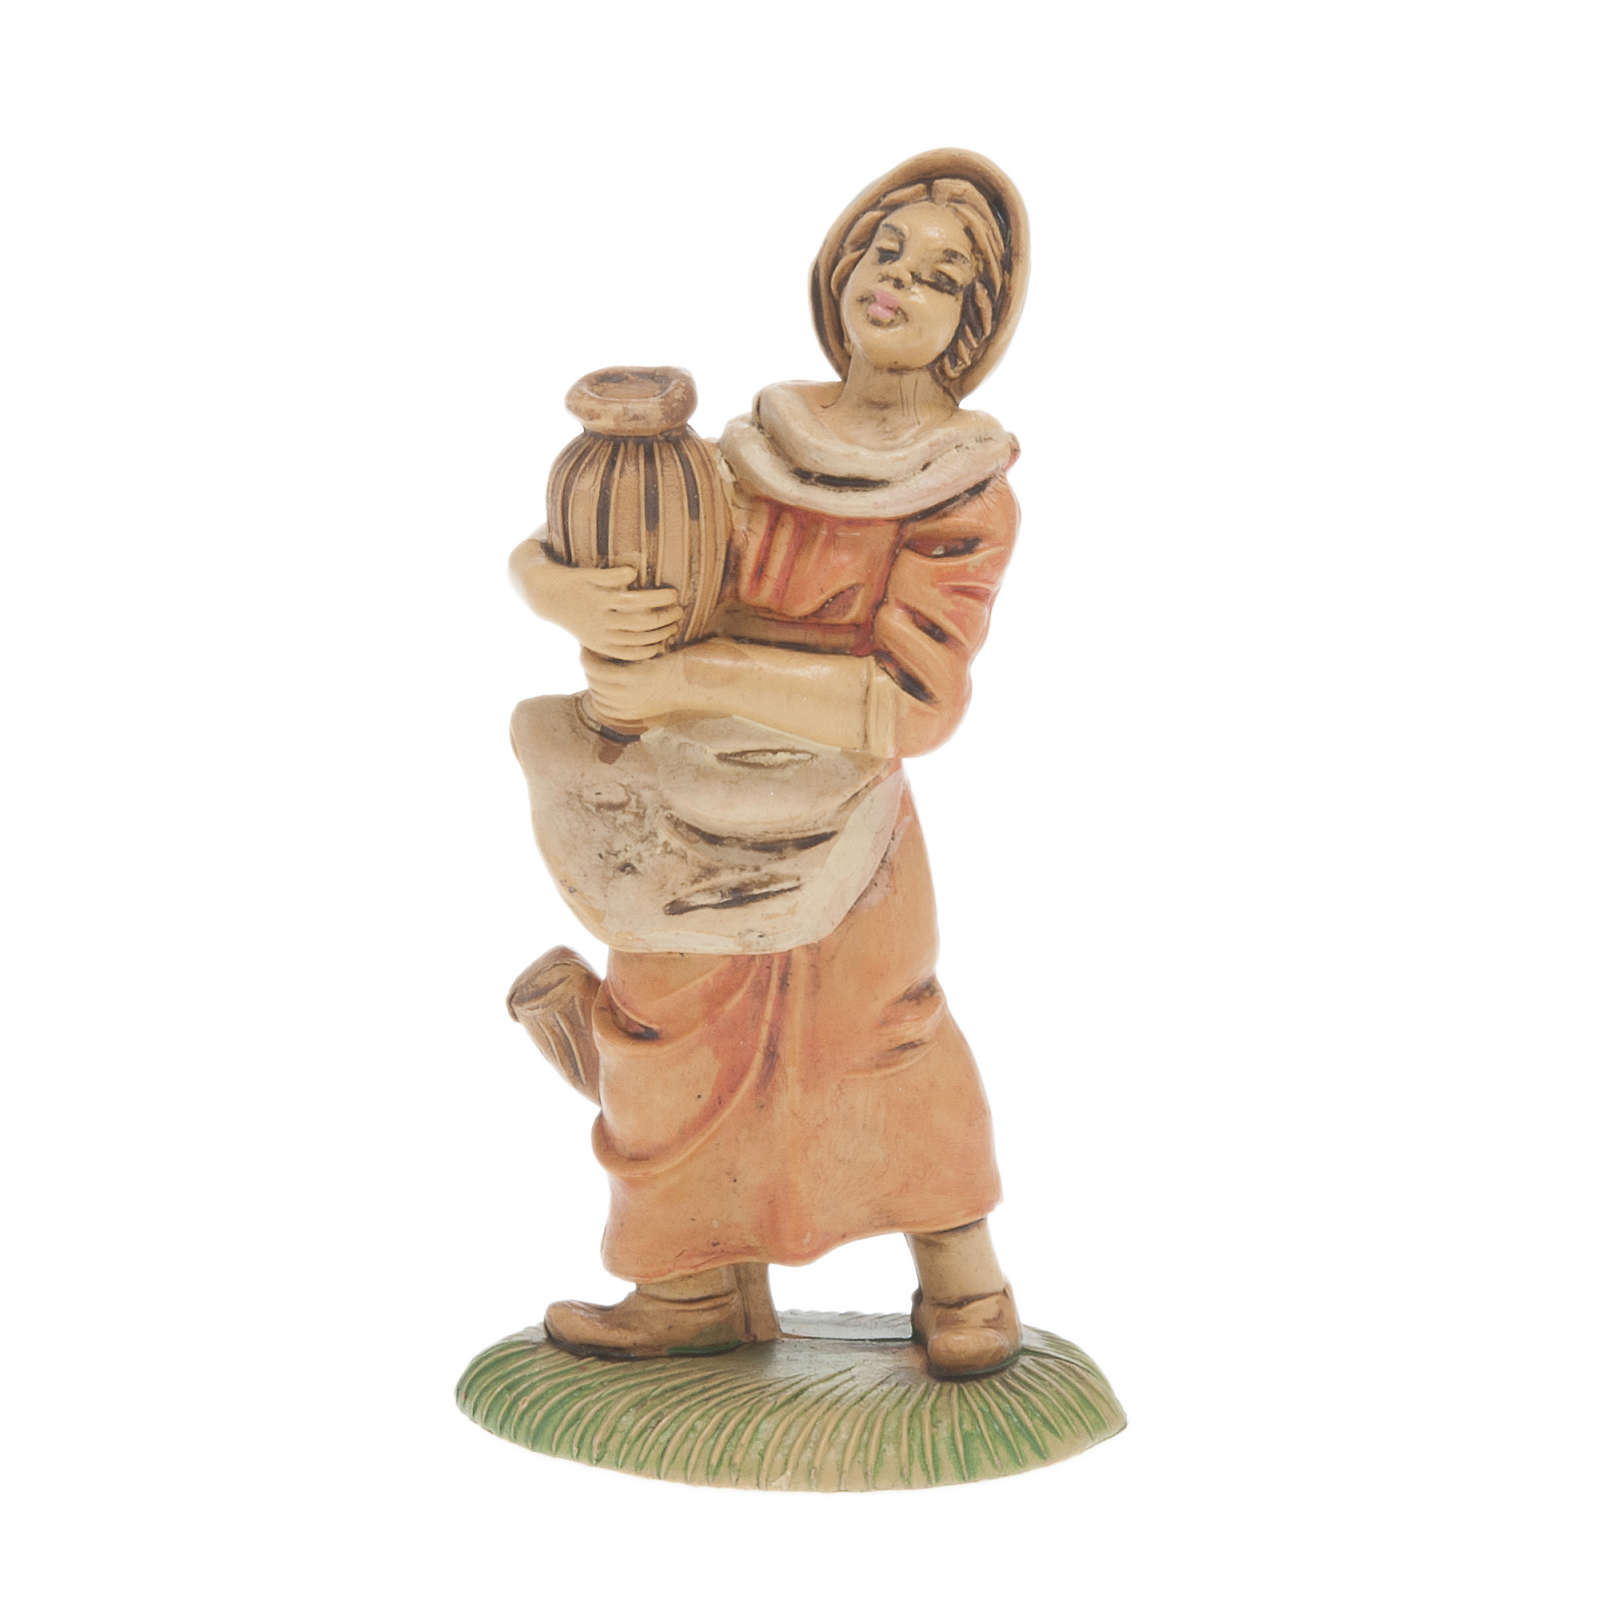 Nativity set accessory, 2-piece Young shepherdess figurines 3